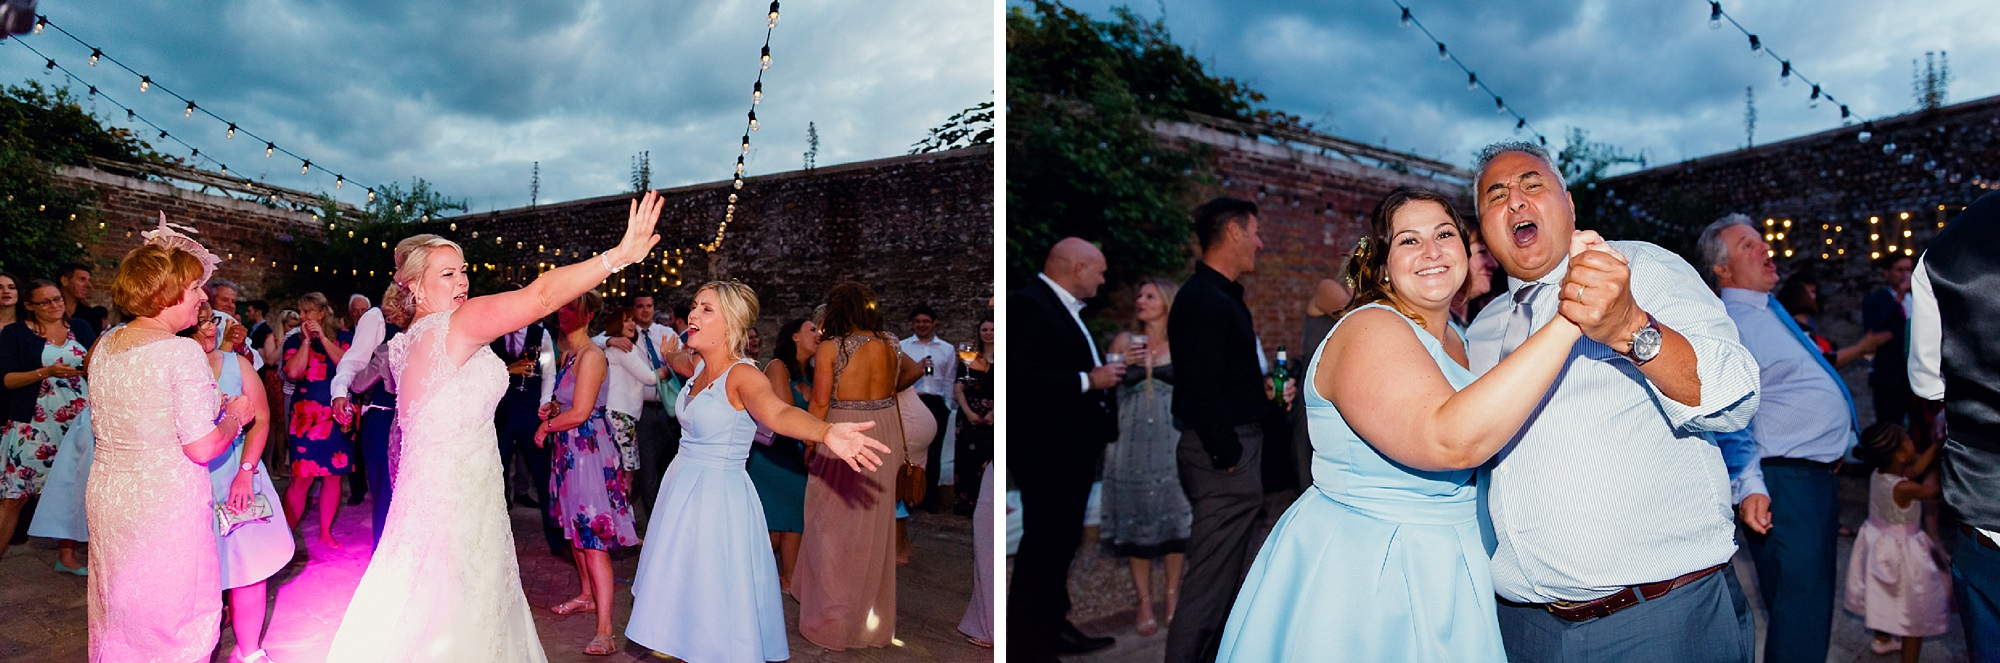 Bignor Park wedding photography fun dancing